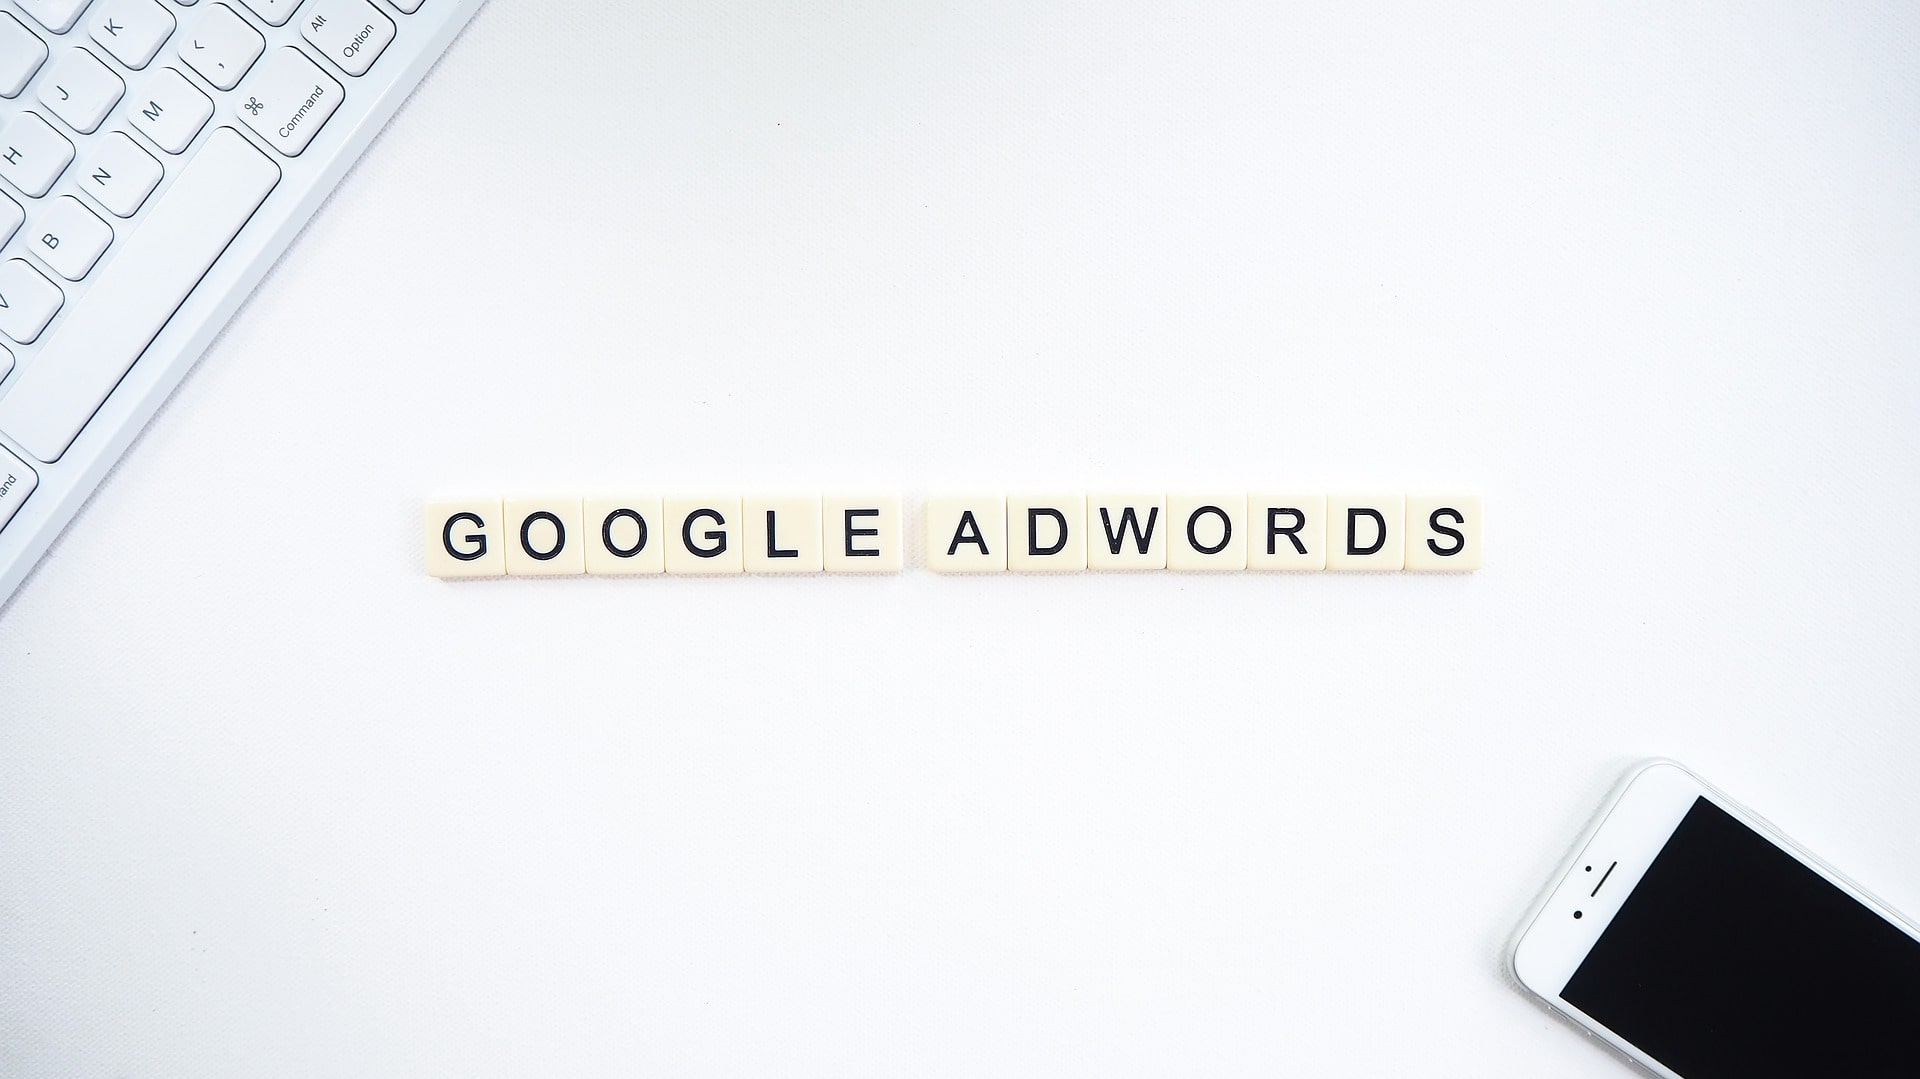 https://www.creamerito.com/wp-content/uploads/2019/09/google-adwords.jpg